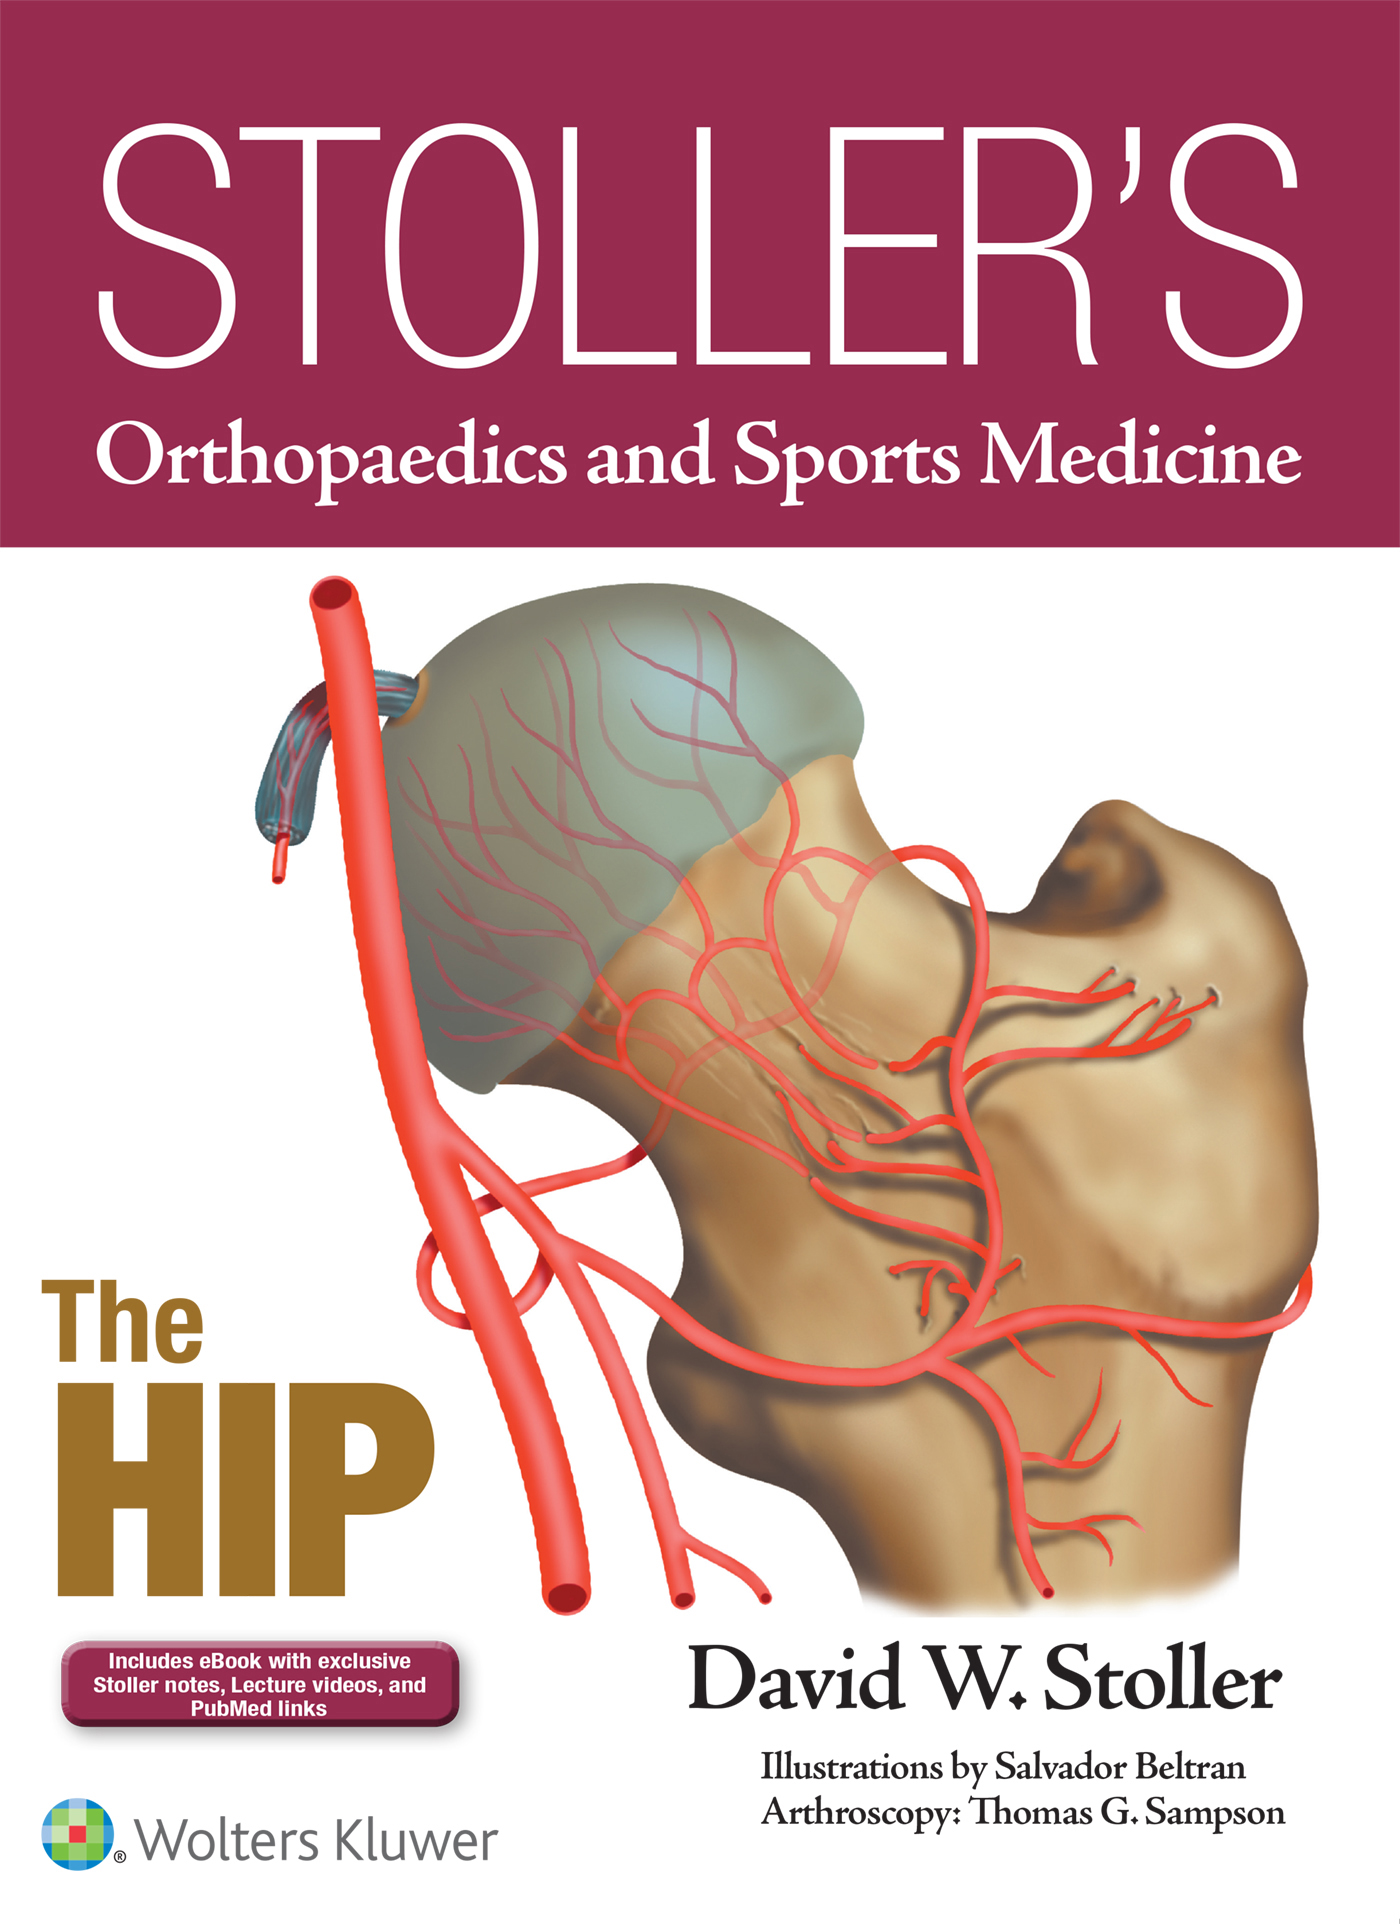 Stoller's Orthopaedics and Sports Medicine: The Hip (Enhanced Edition ePrint + eBook bundle)